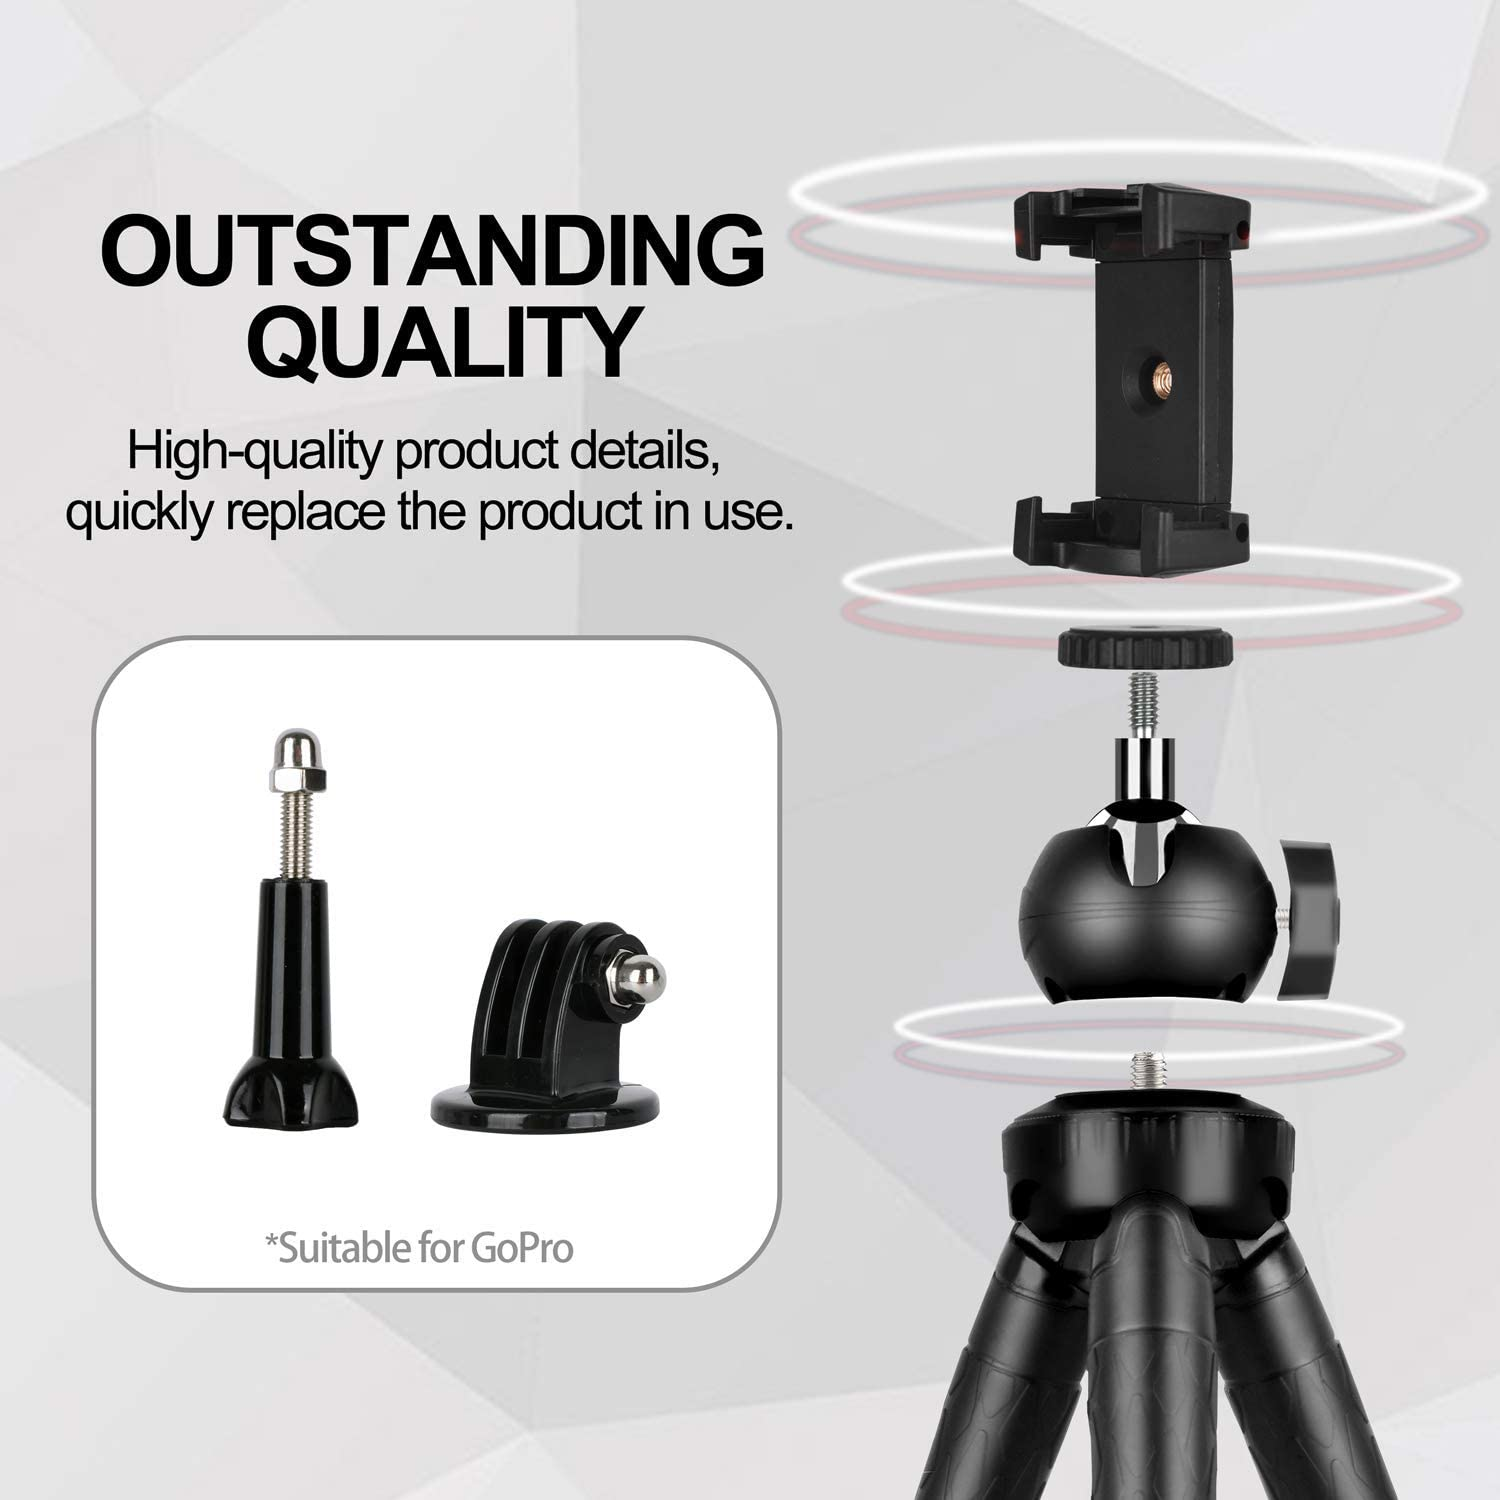 Portable and Flexible Camera Stand Holder with Wireless Remote and Universal Clip Emart Handheld Phone Tripod Compatible with iphone//Android Phone Bendable Tripod Stand for Camera Gopro